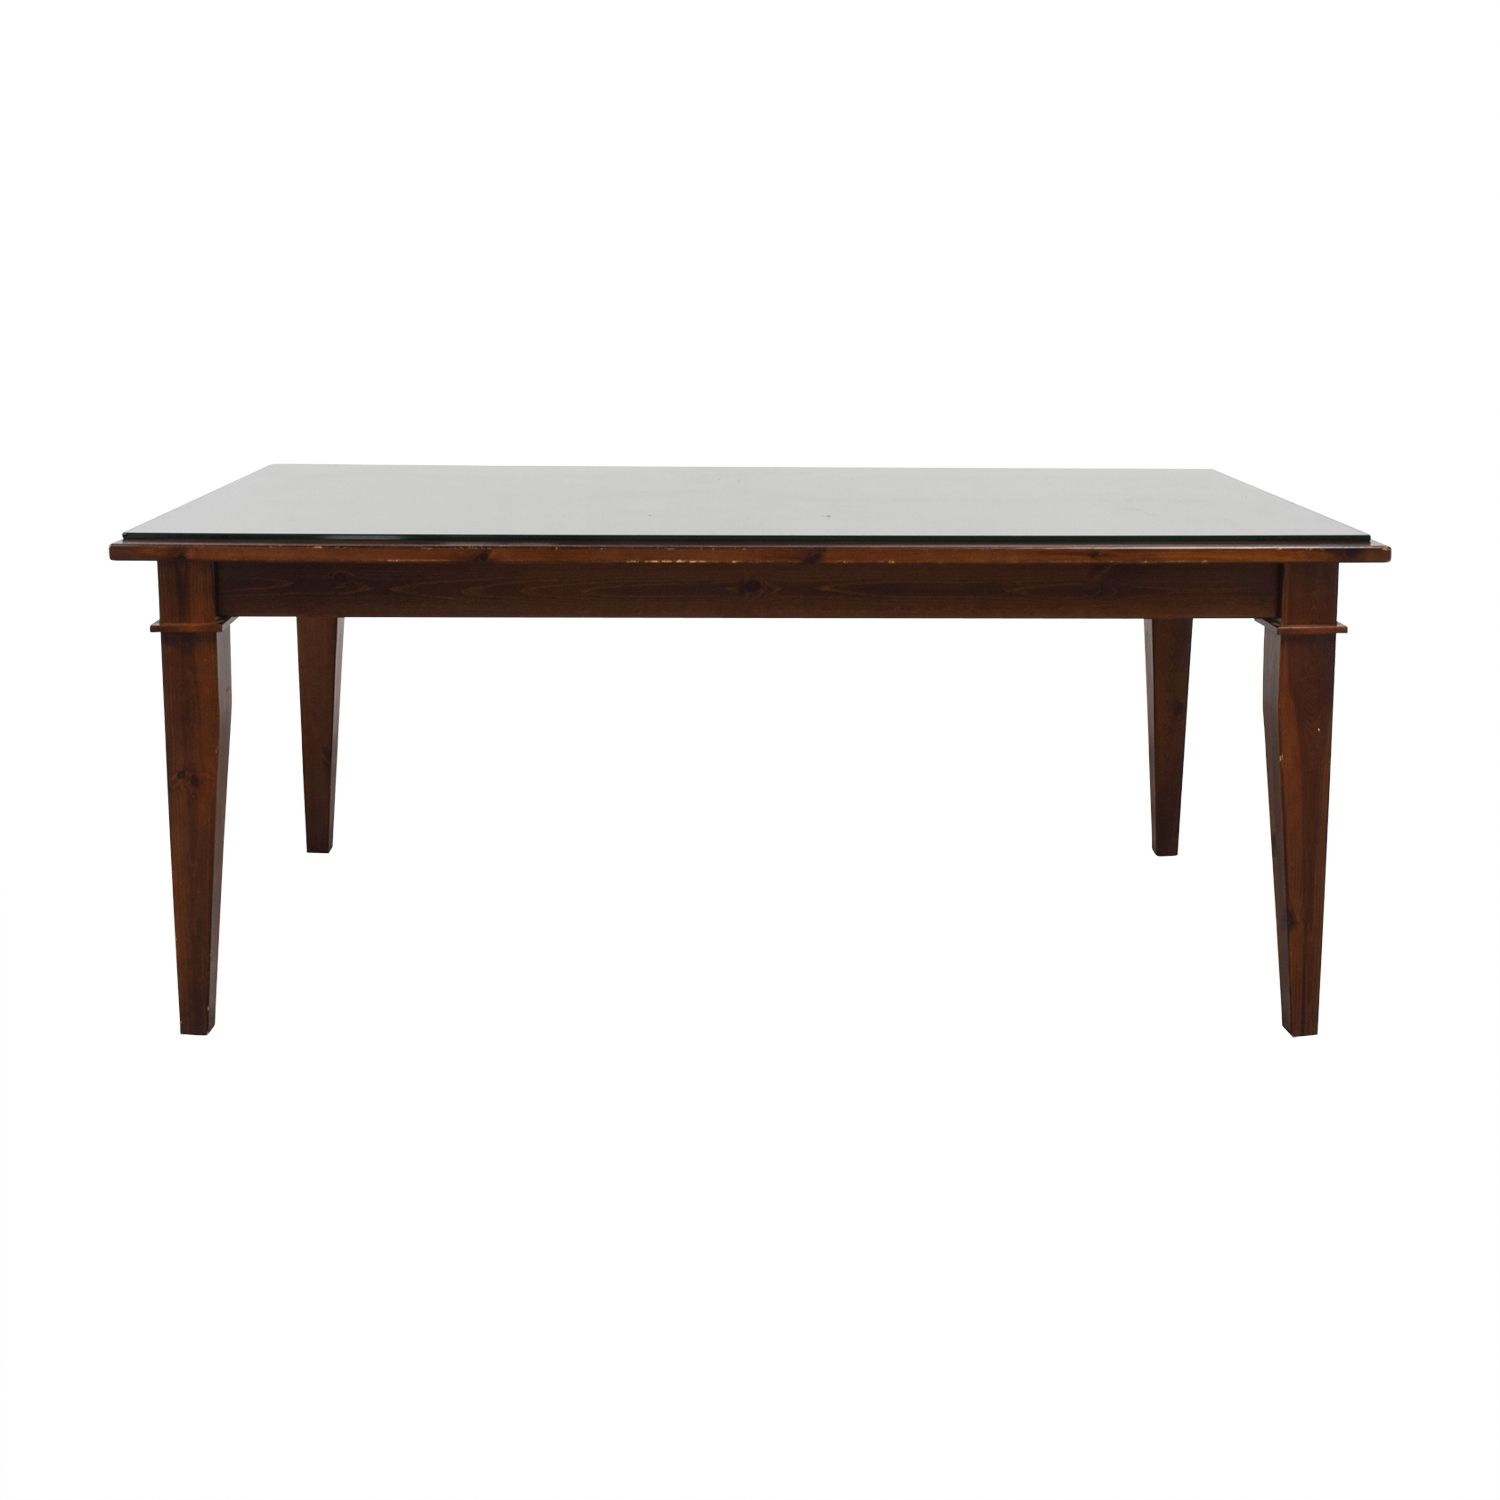 Pottery Barn Pottery Barn Dining Table with Glass Top nj